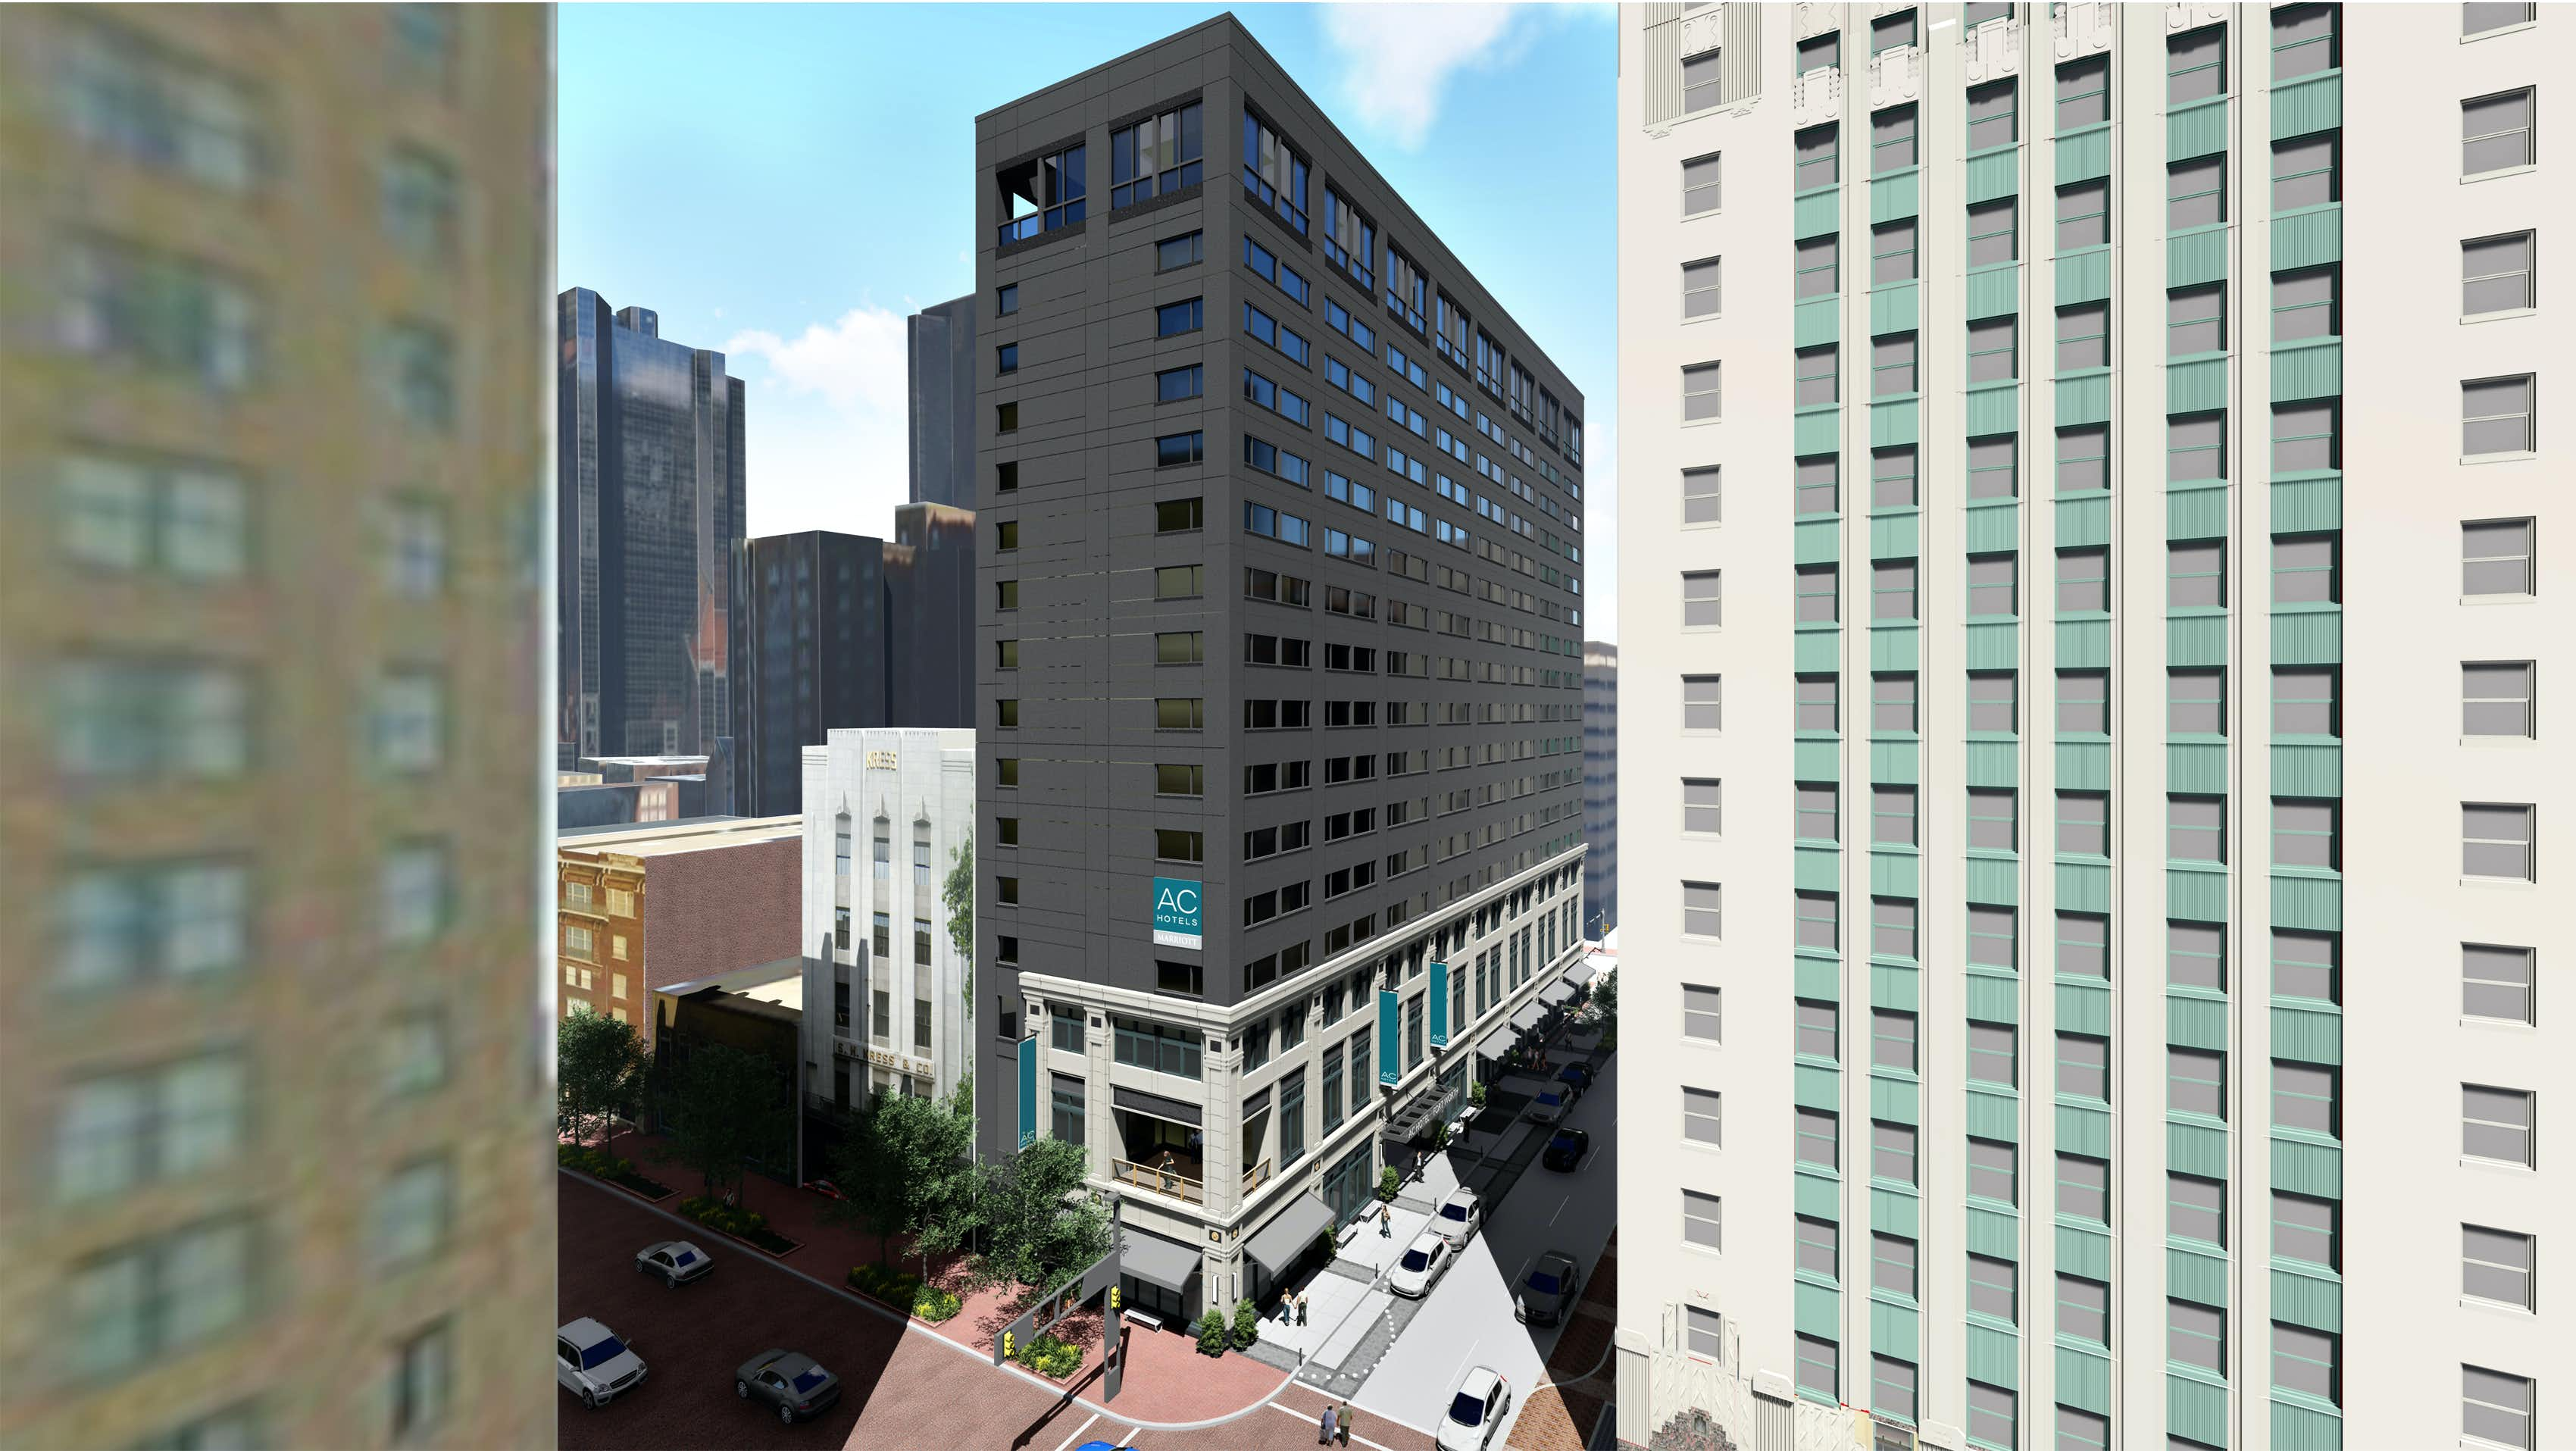 New hotel tower project starts in downtown Fort Worth